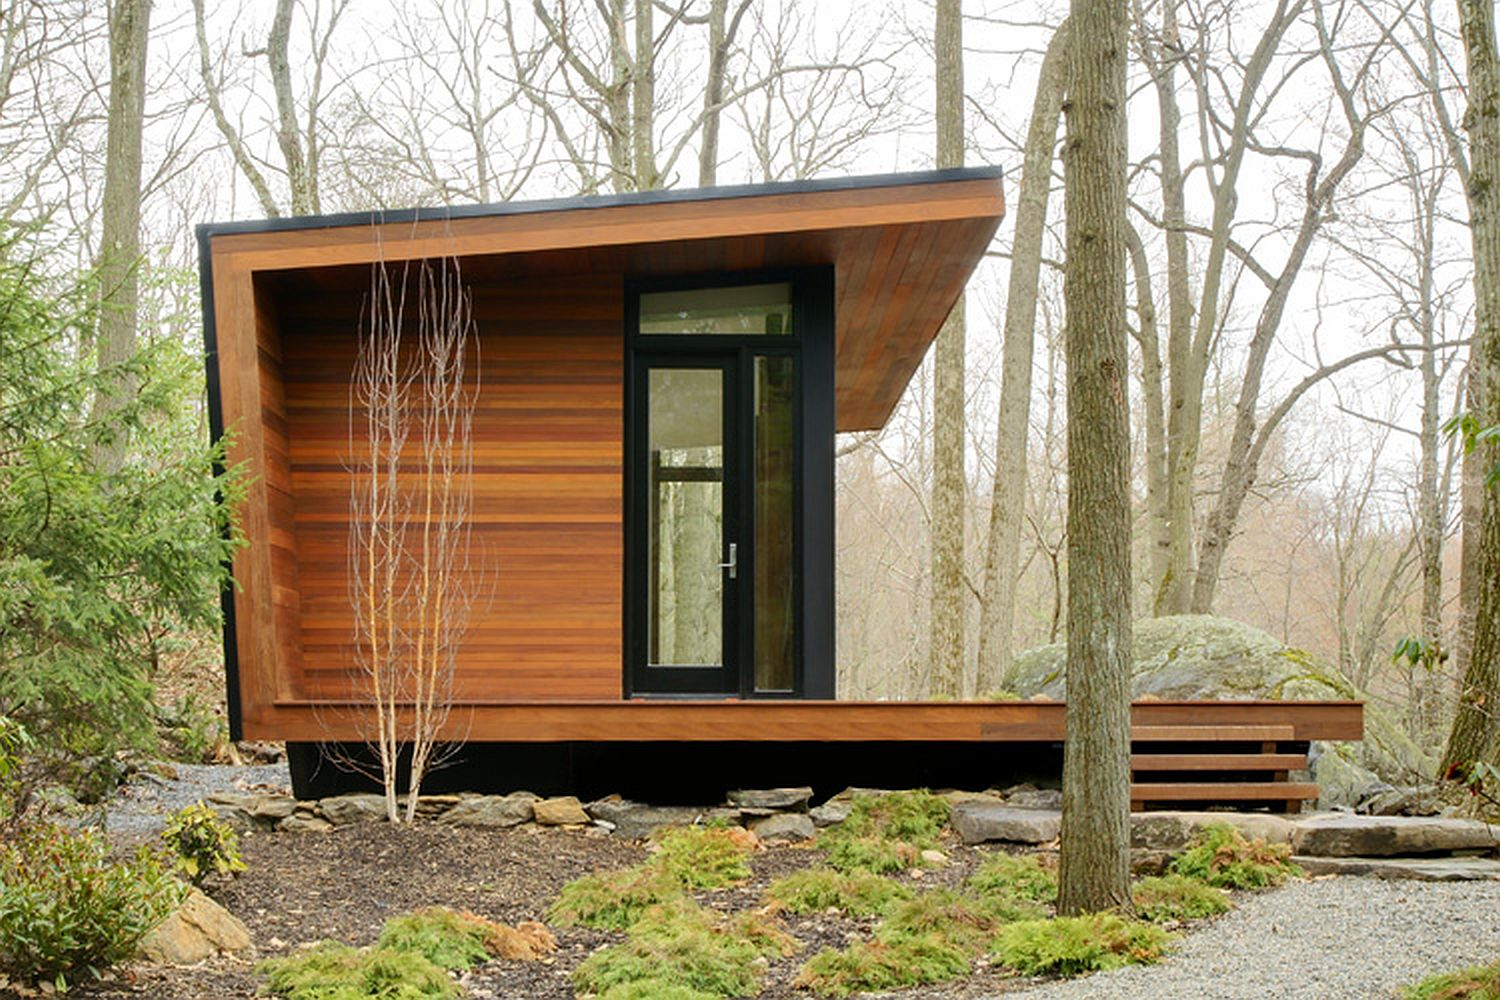 Gallery a modern studio retreat in the woods workshop for Building a small cabin in the woods